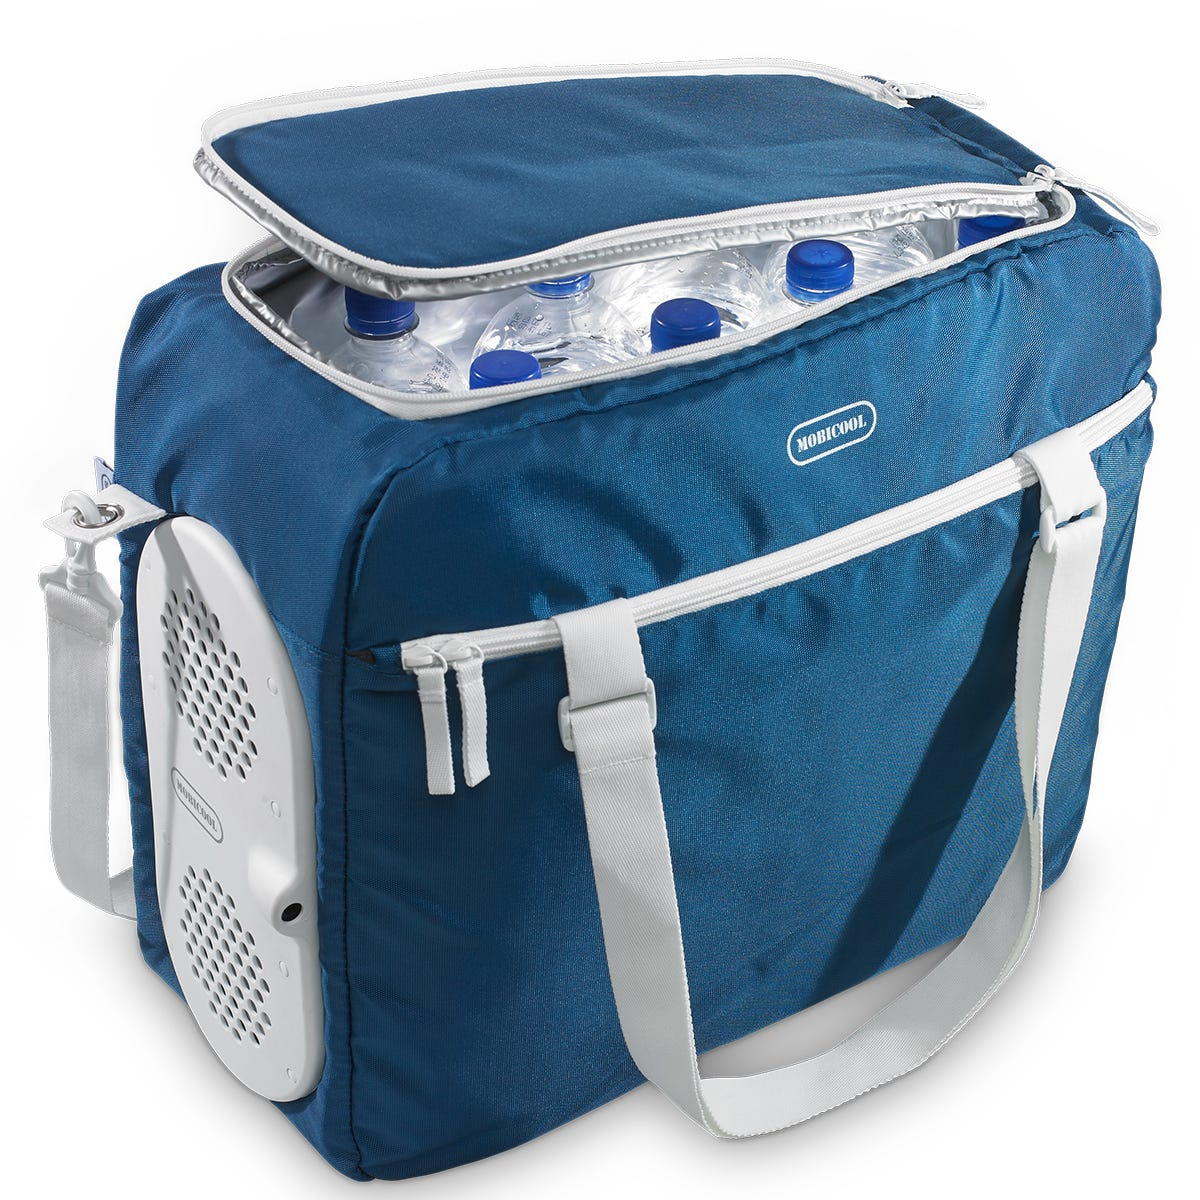 Mobicool MB32 Thermoelectric Cool Bag - 32 Litre